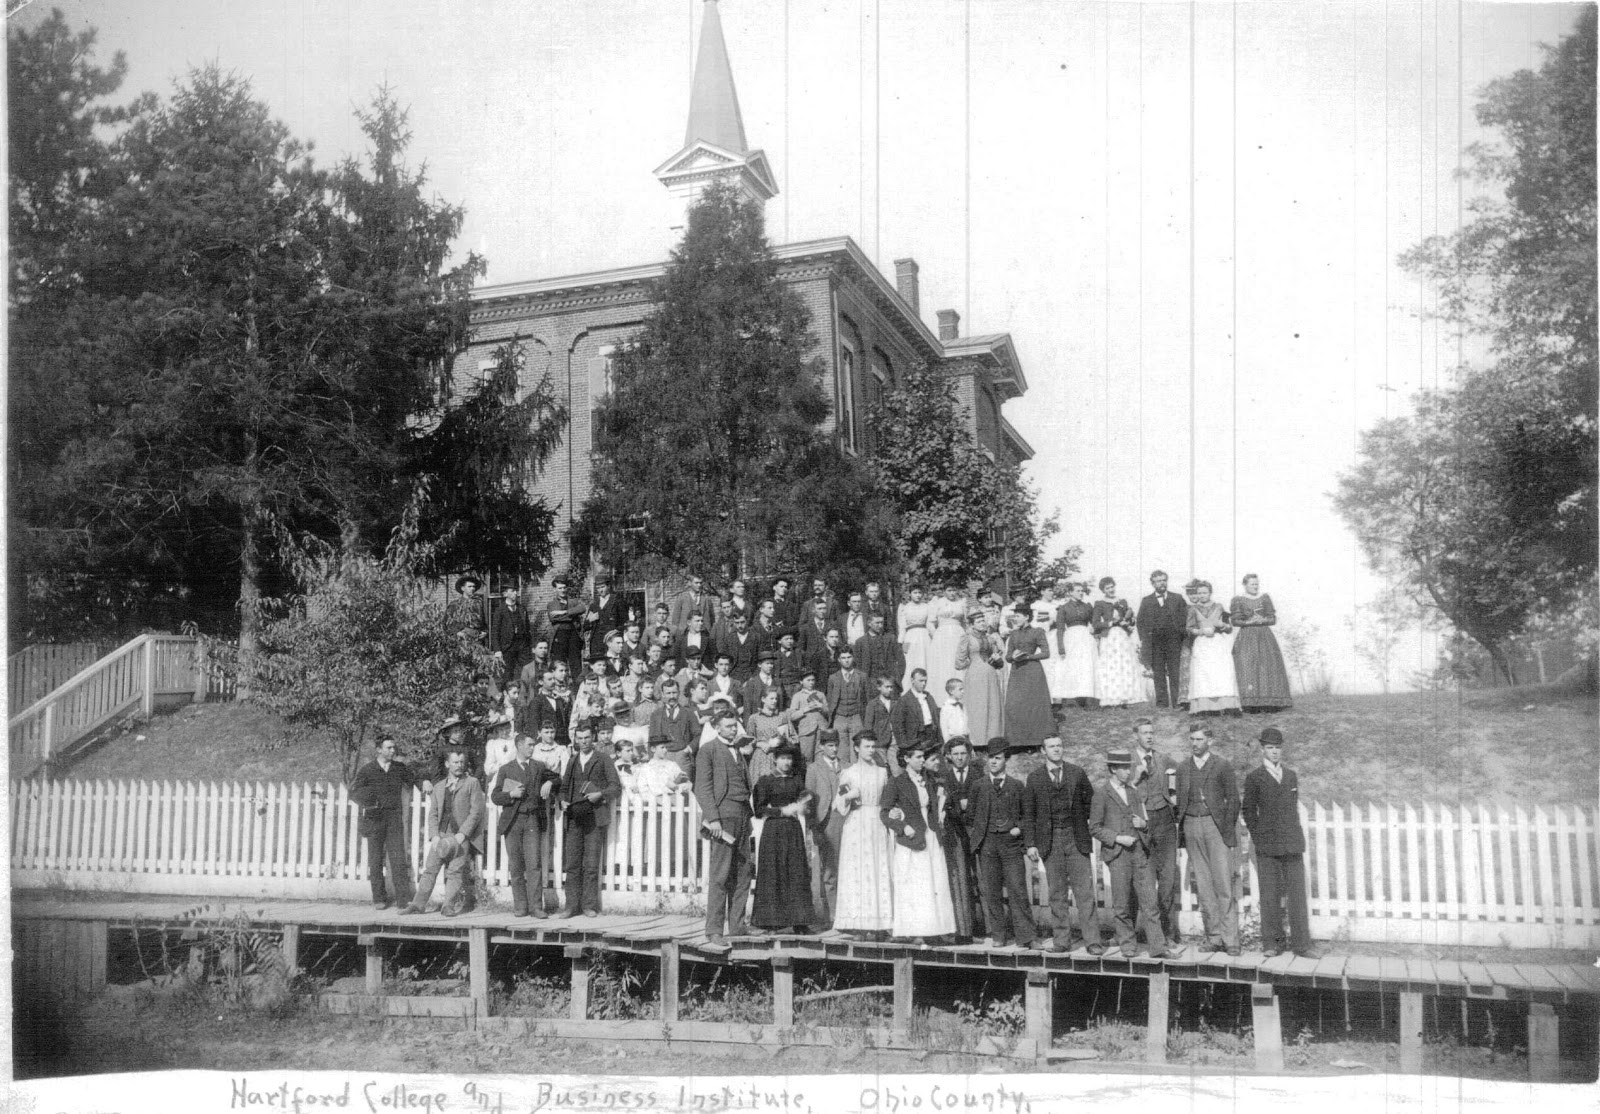 Hartford College and Business Institute, W.H. Davidson 1880's-1890's